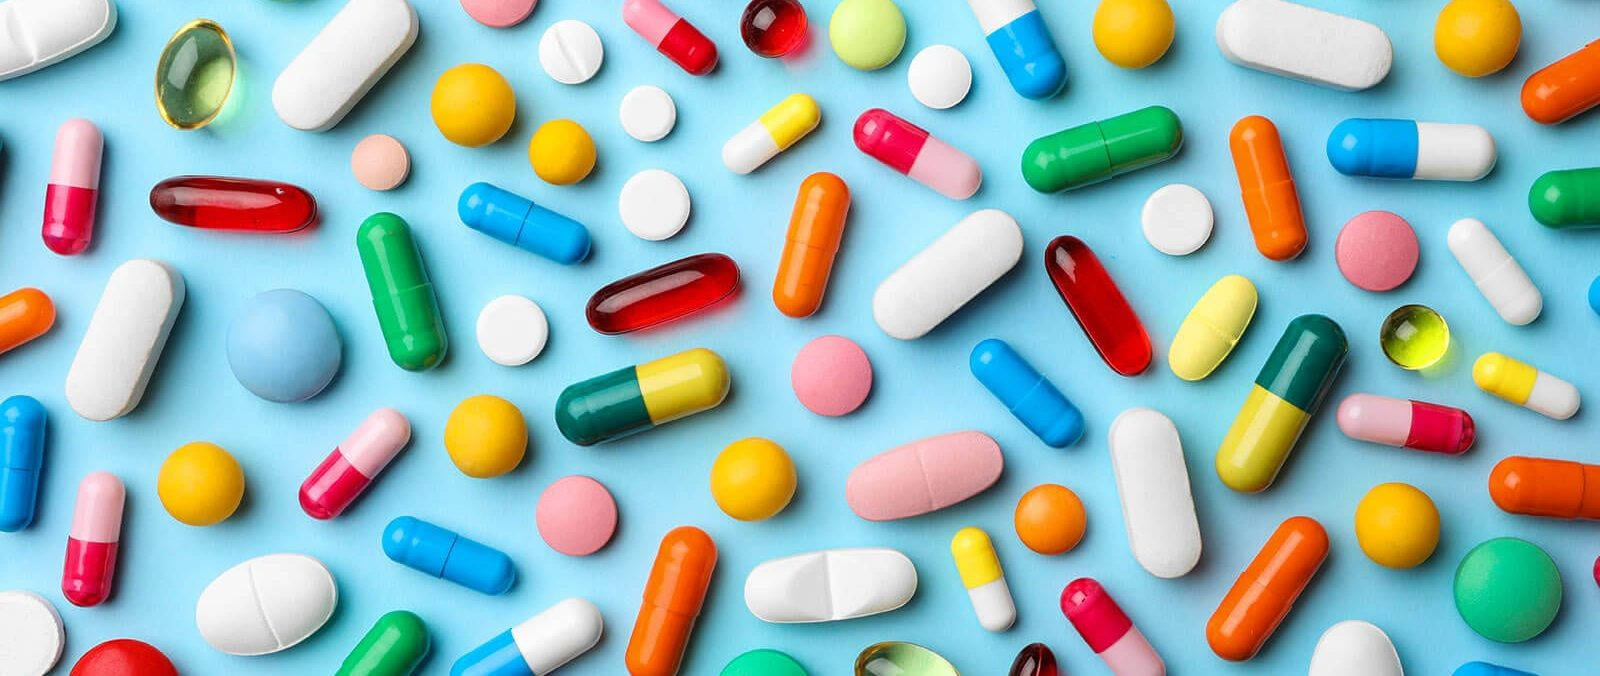 Why do we treat Suboxone different than Antidepressants?